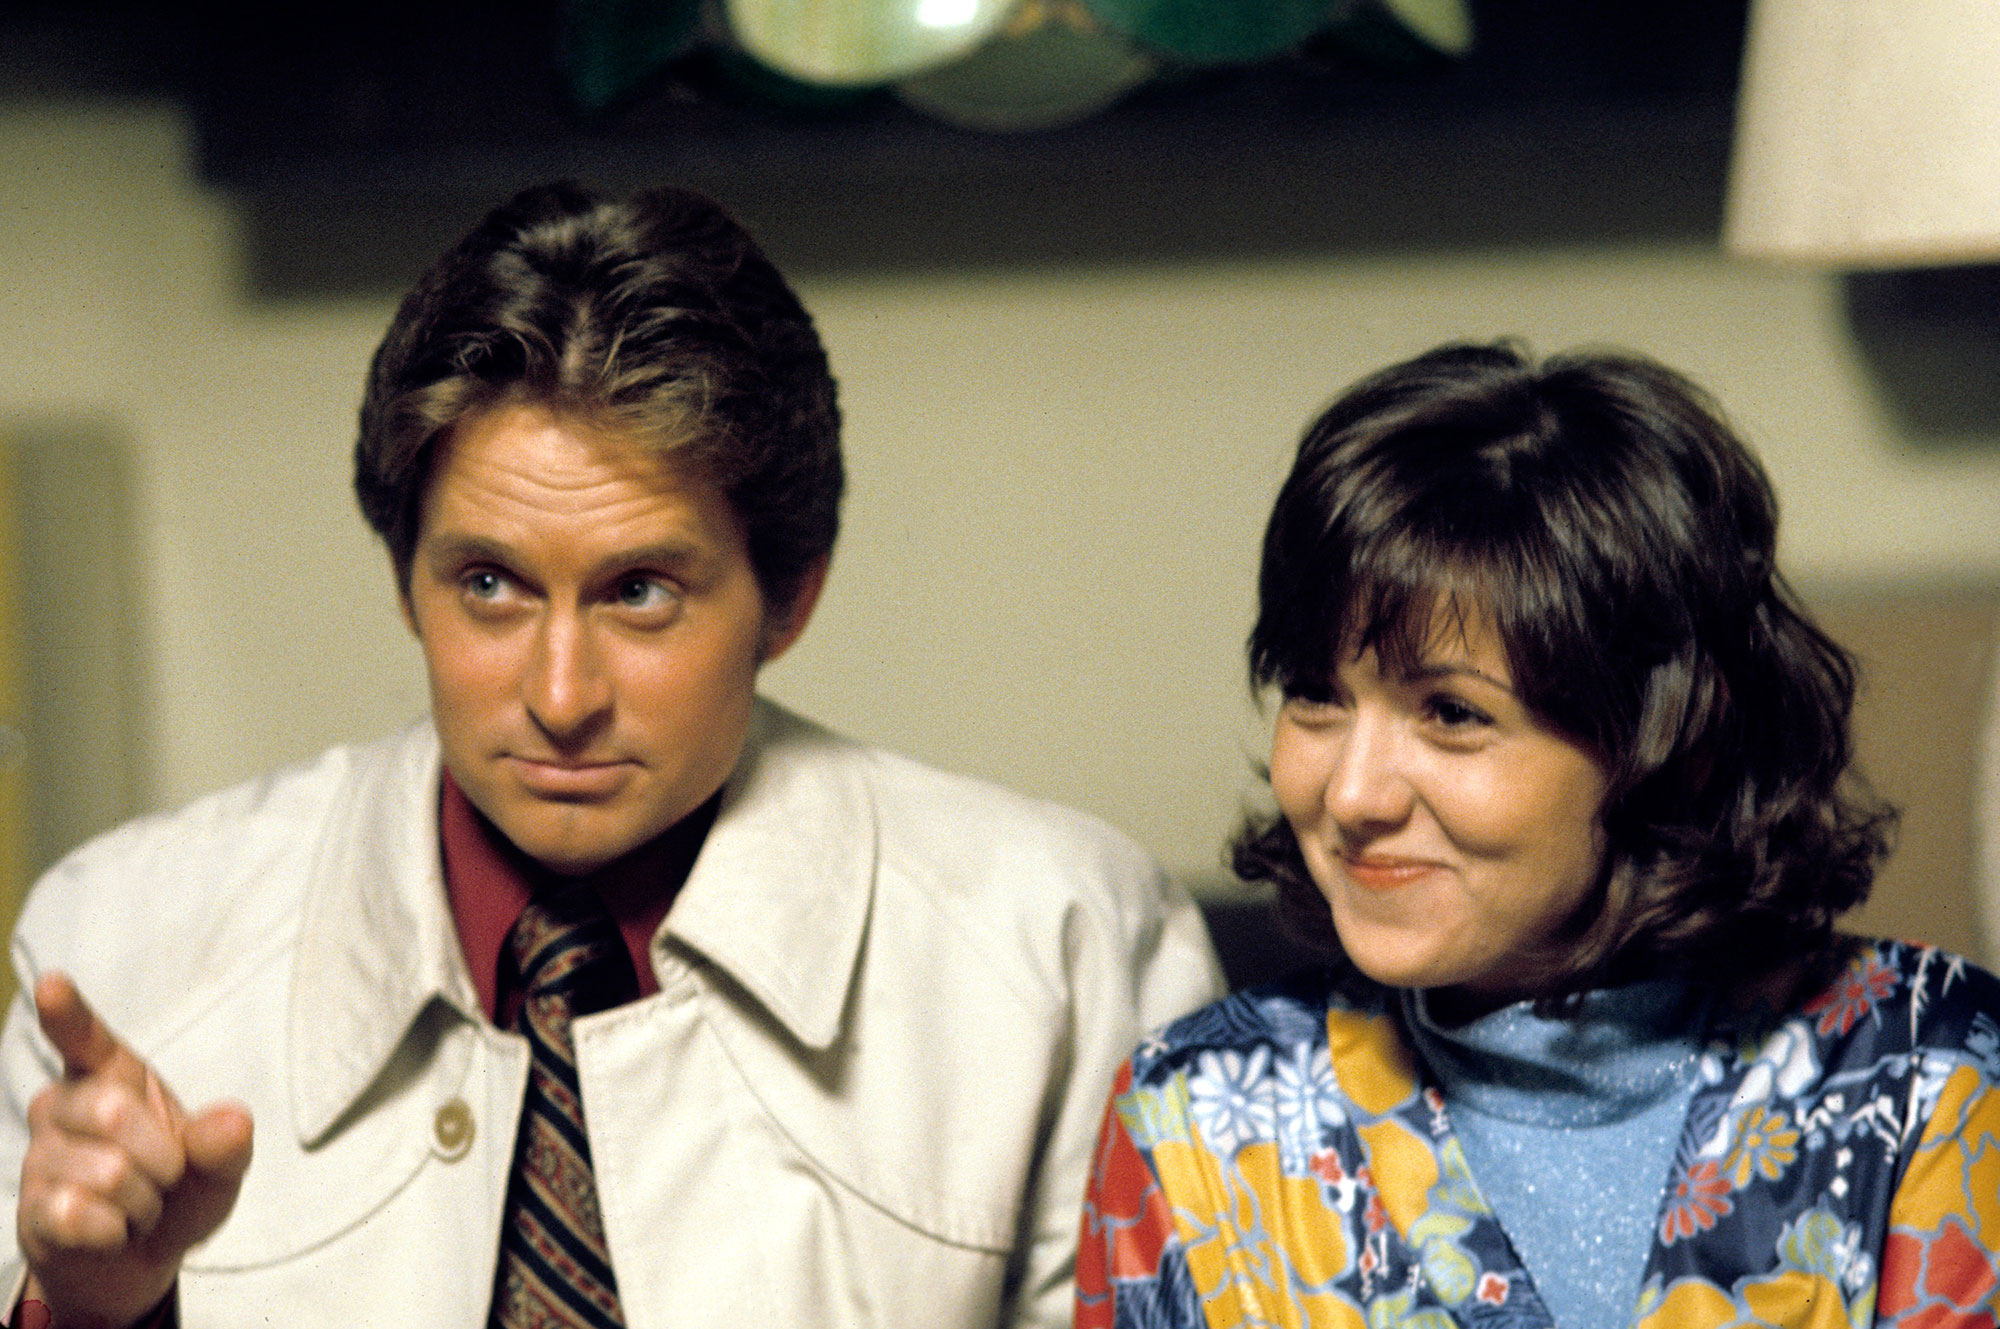 Brenda Vaccaro Says She Did Drugs With Michael Douglas - Brenda Vaccaro and Michael Douglas appear in 'The Streets Of San Francisco' January 18, 1973.